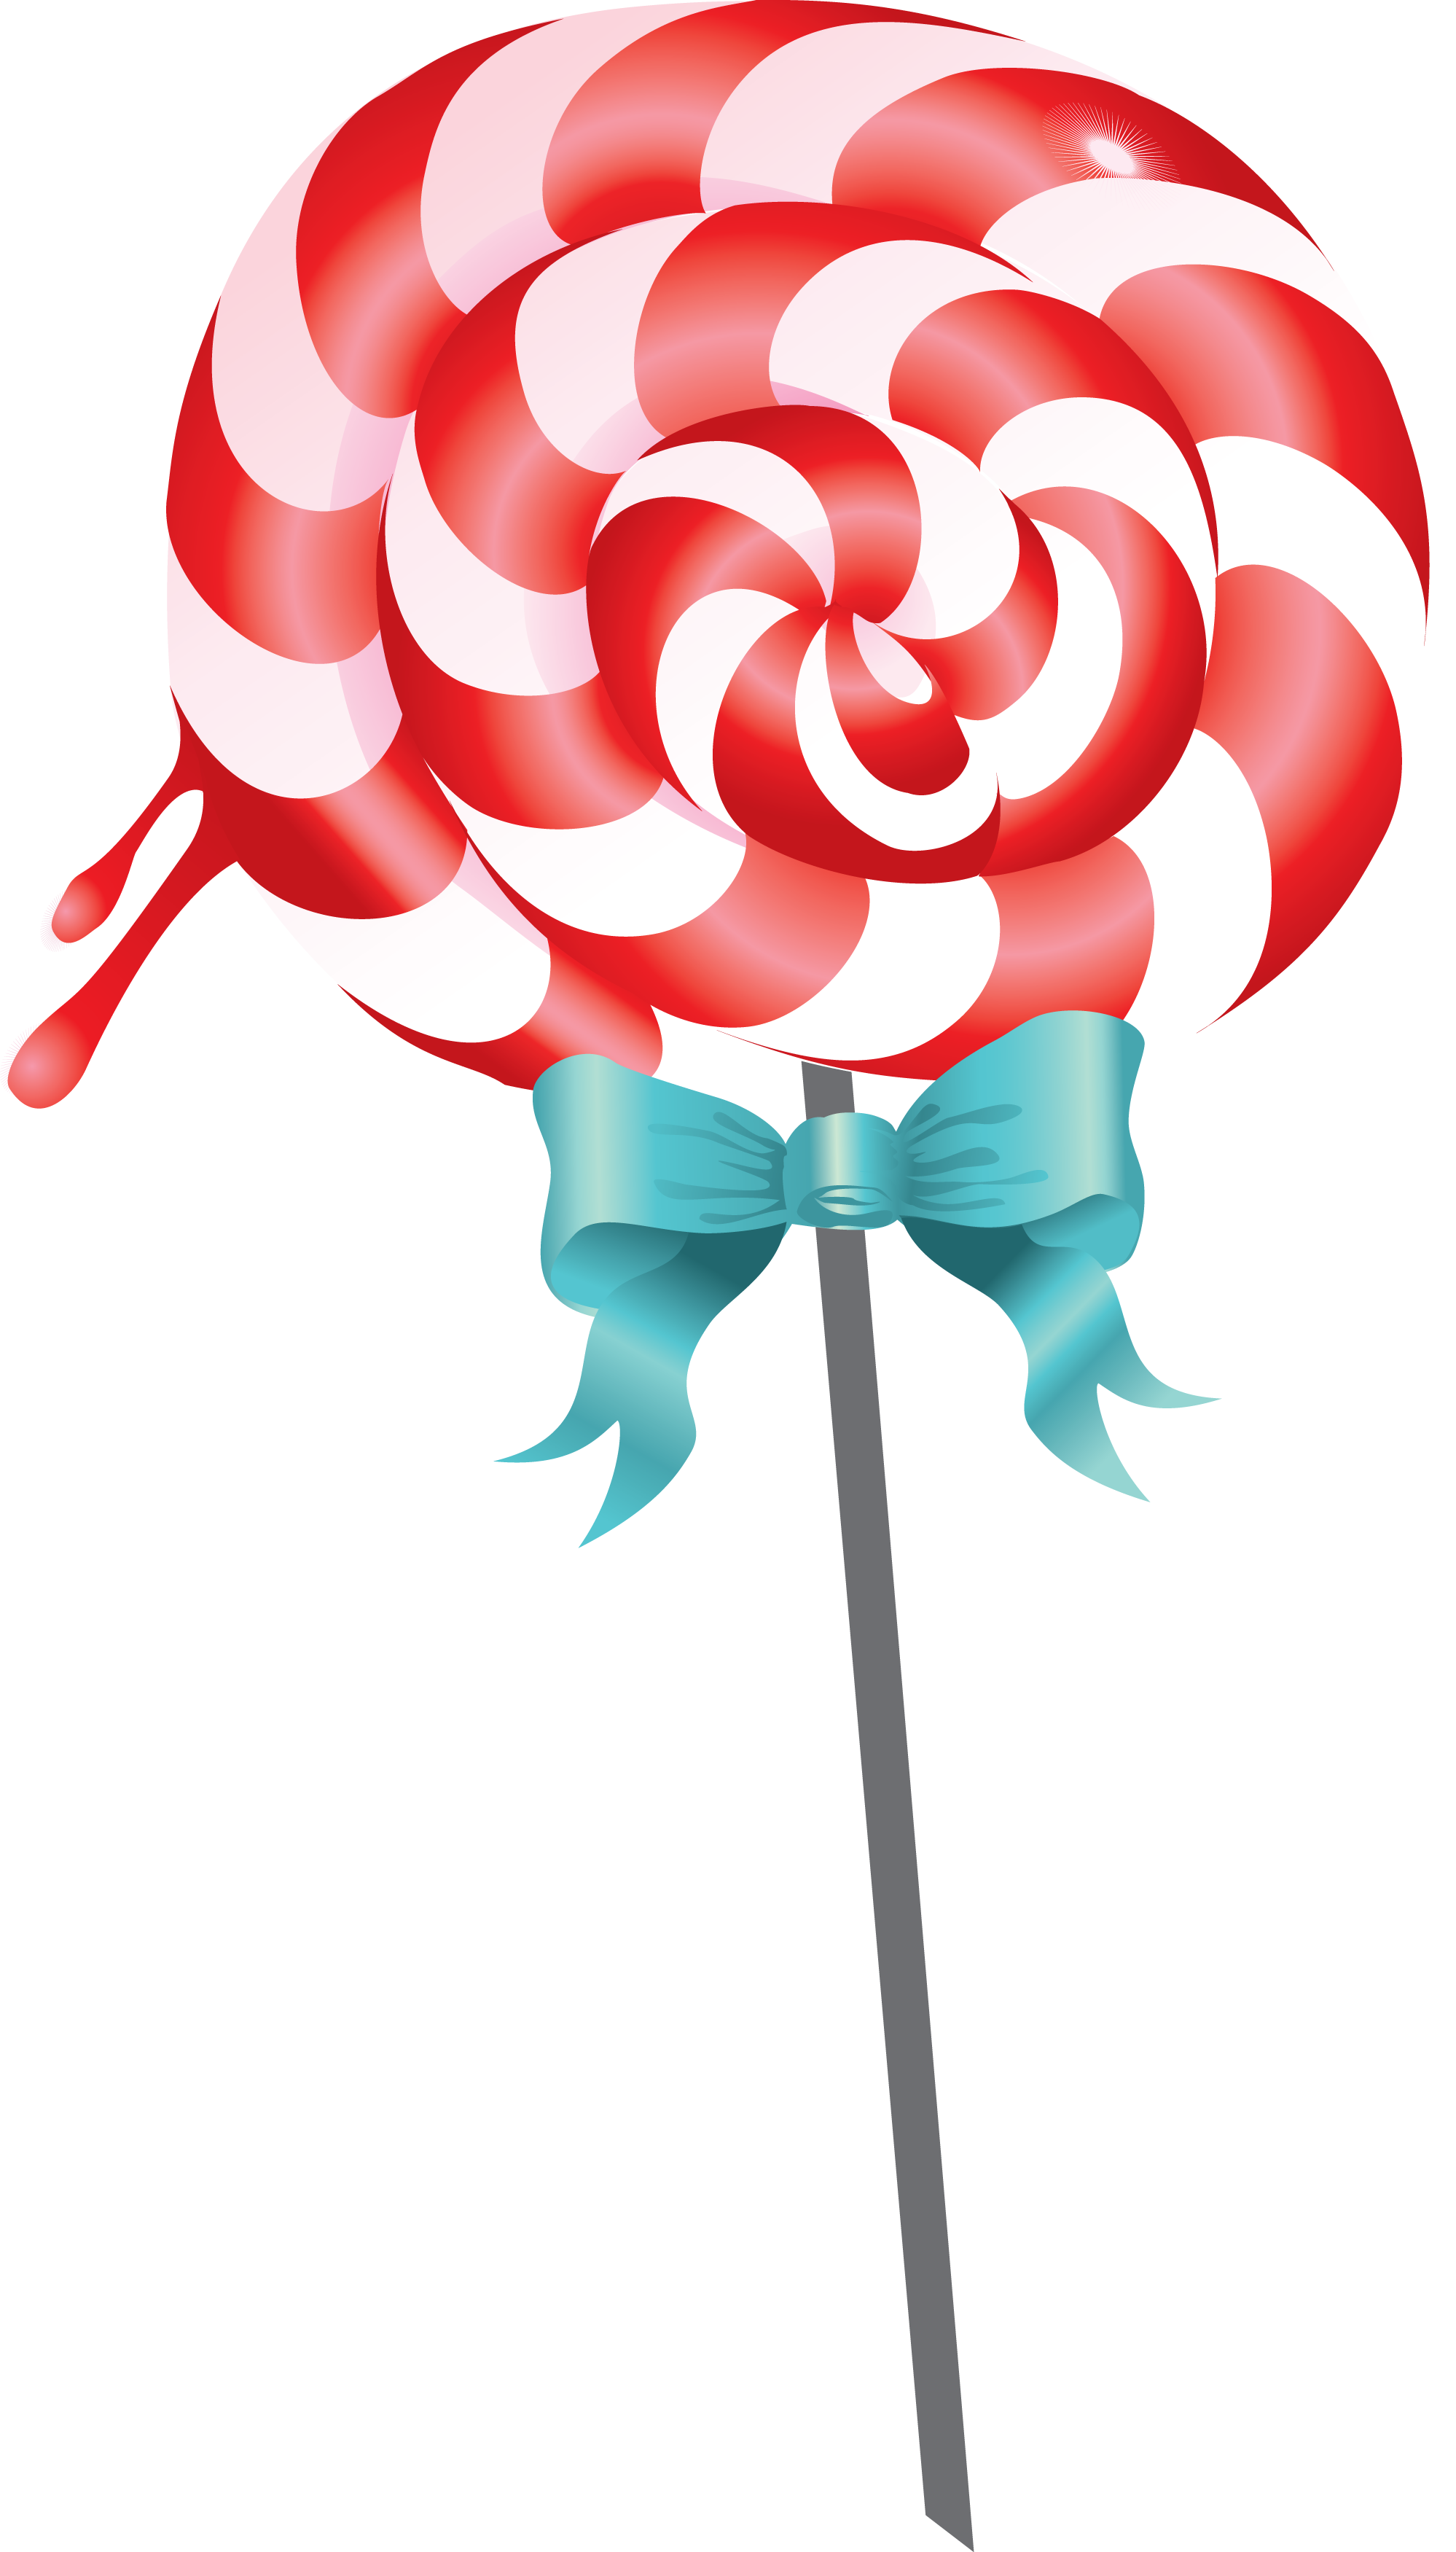 banner royalty free Lollipop PNG Image